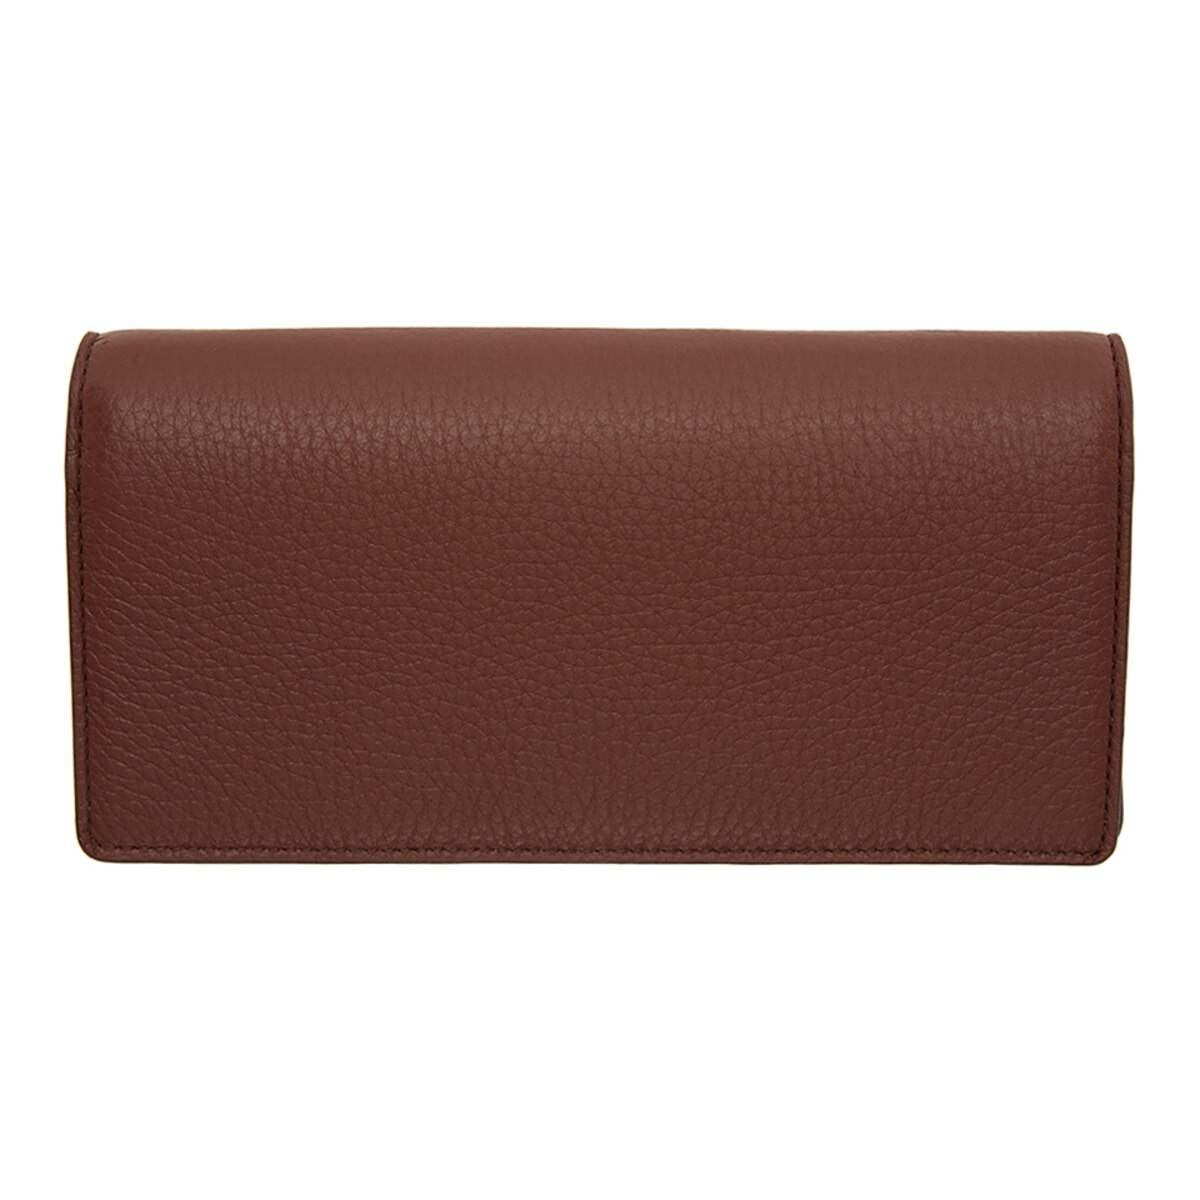 Maison Margiela Brown Bifold Travel Wallet Ssense USA MEN Men ACCESSORIES Mens WALLETS